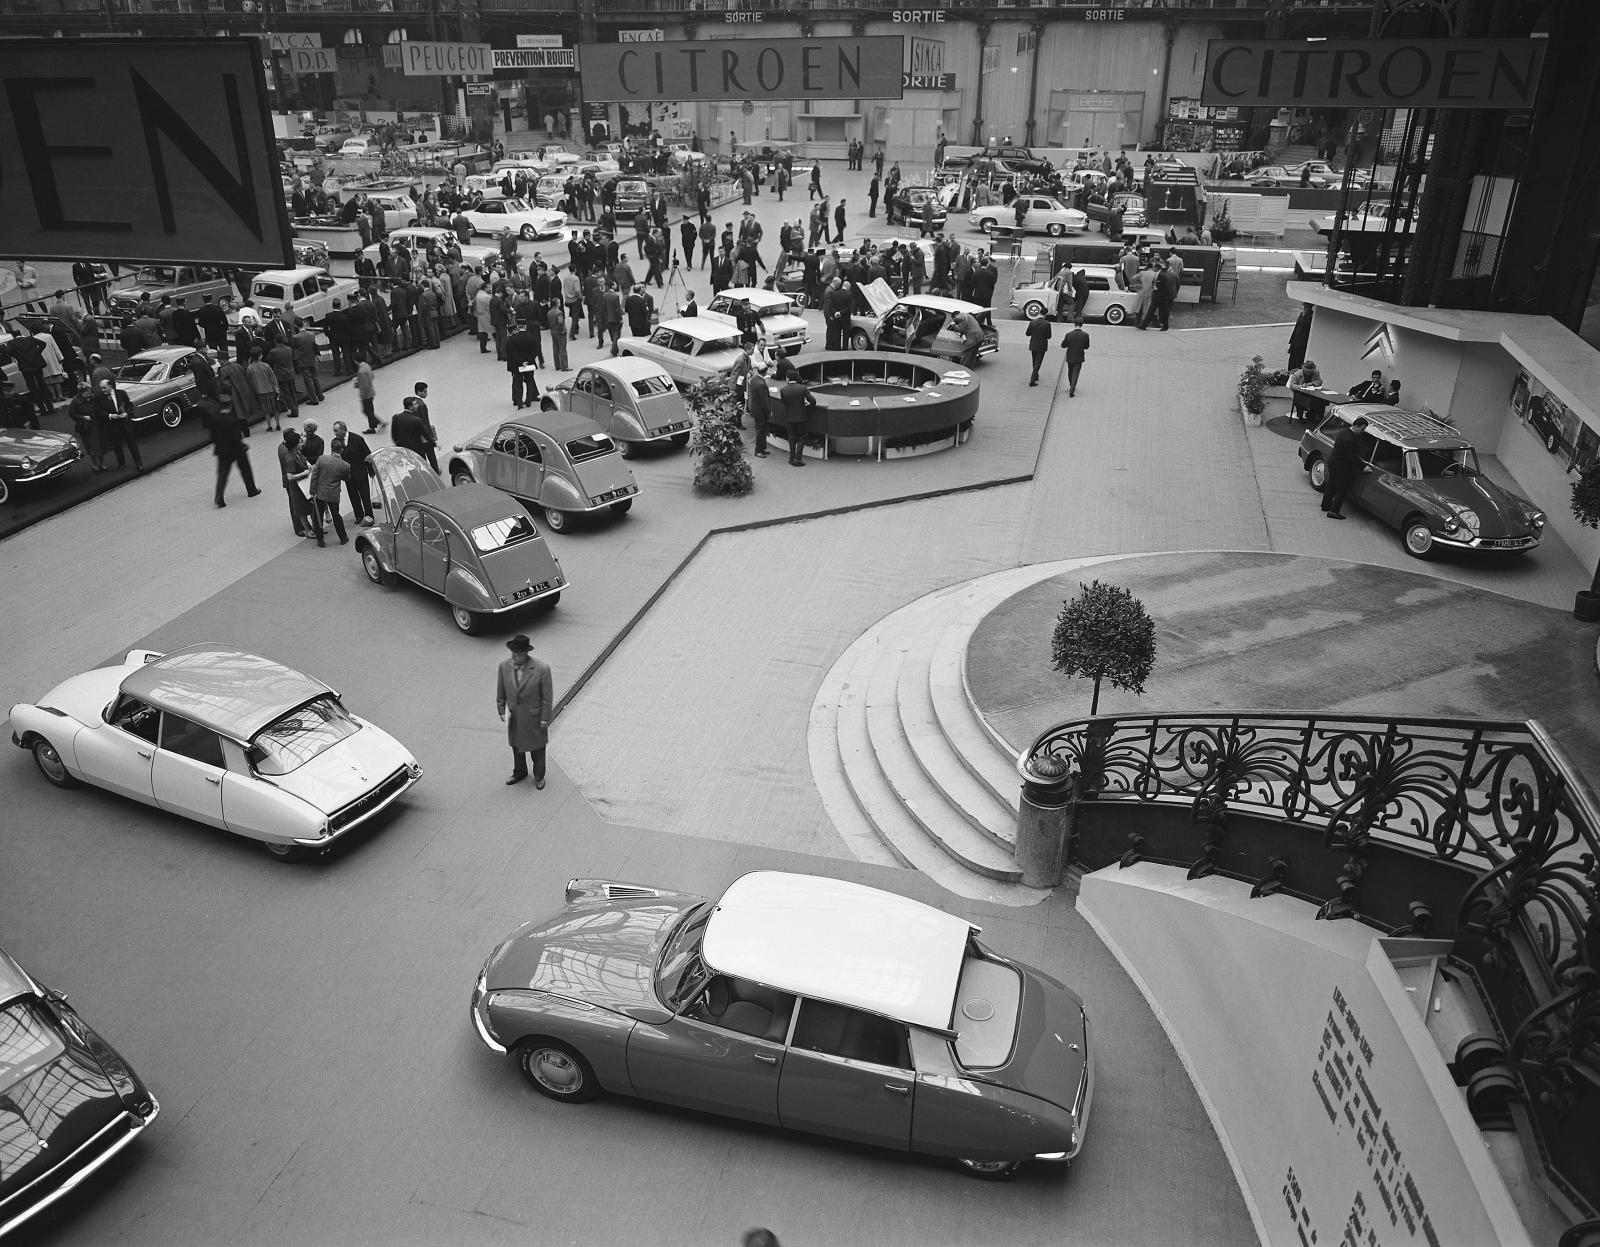 Stánek Citroën - Salon de l'automobile 1961